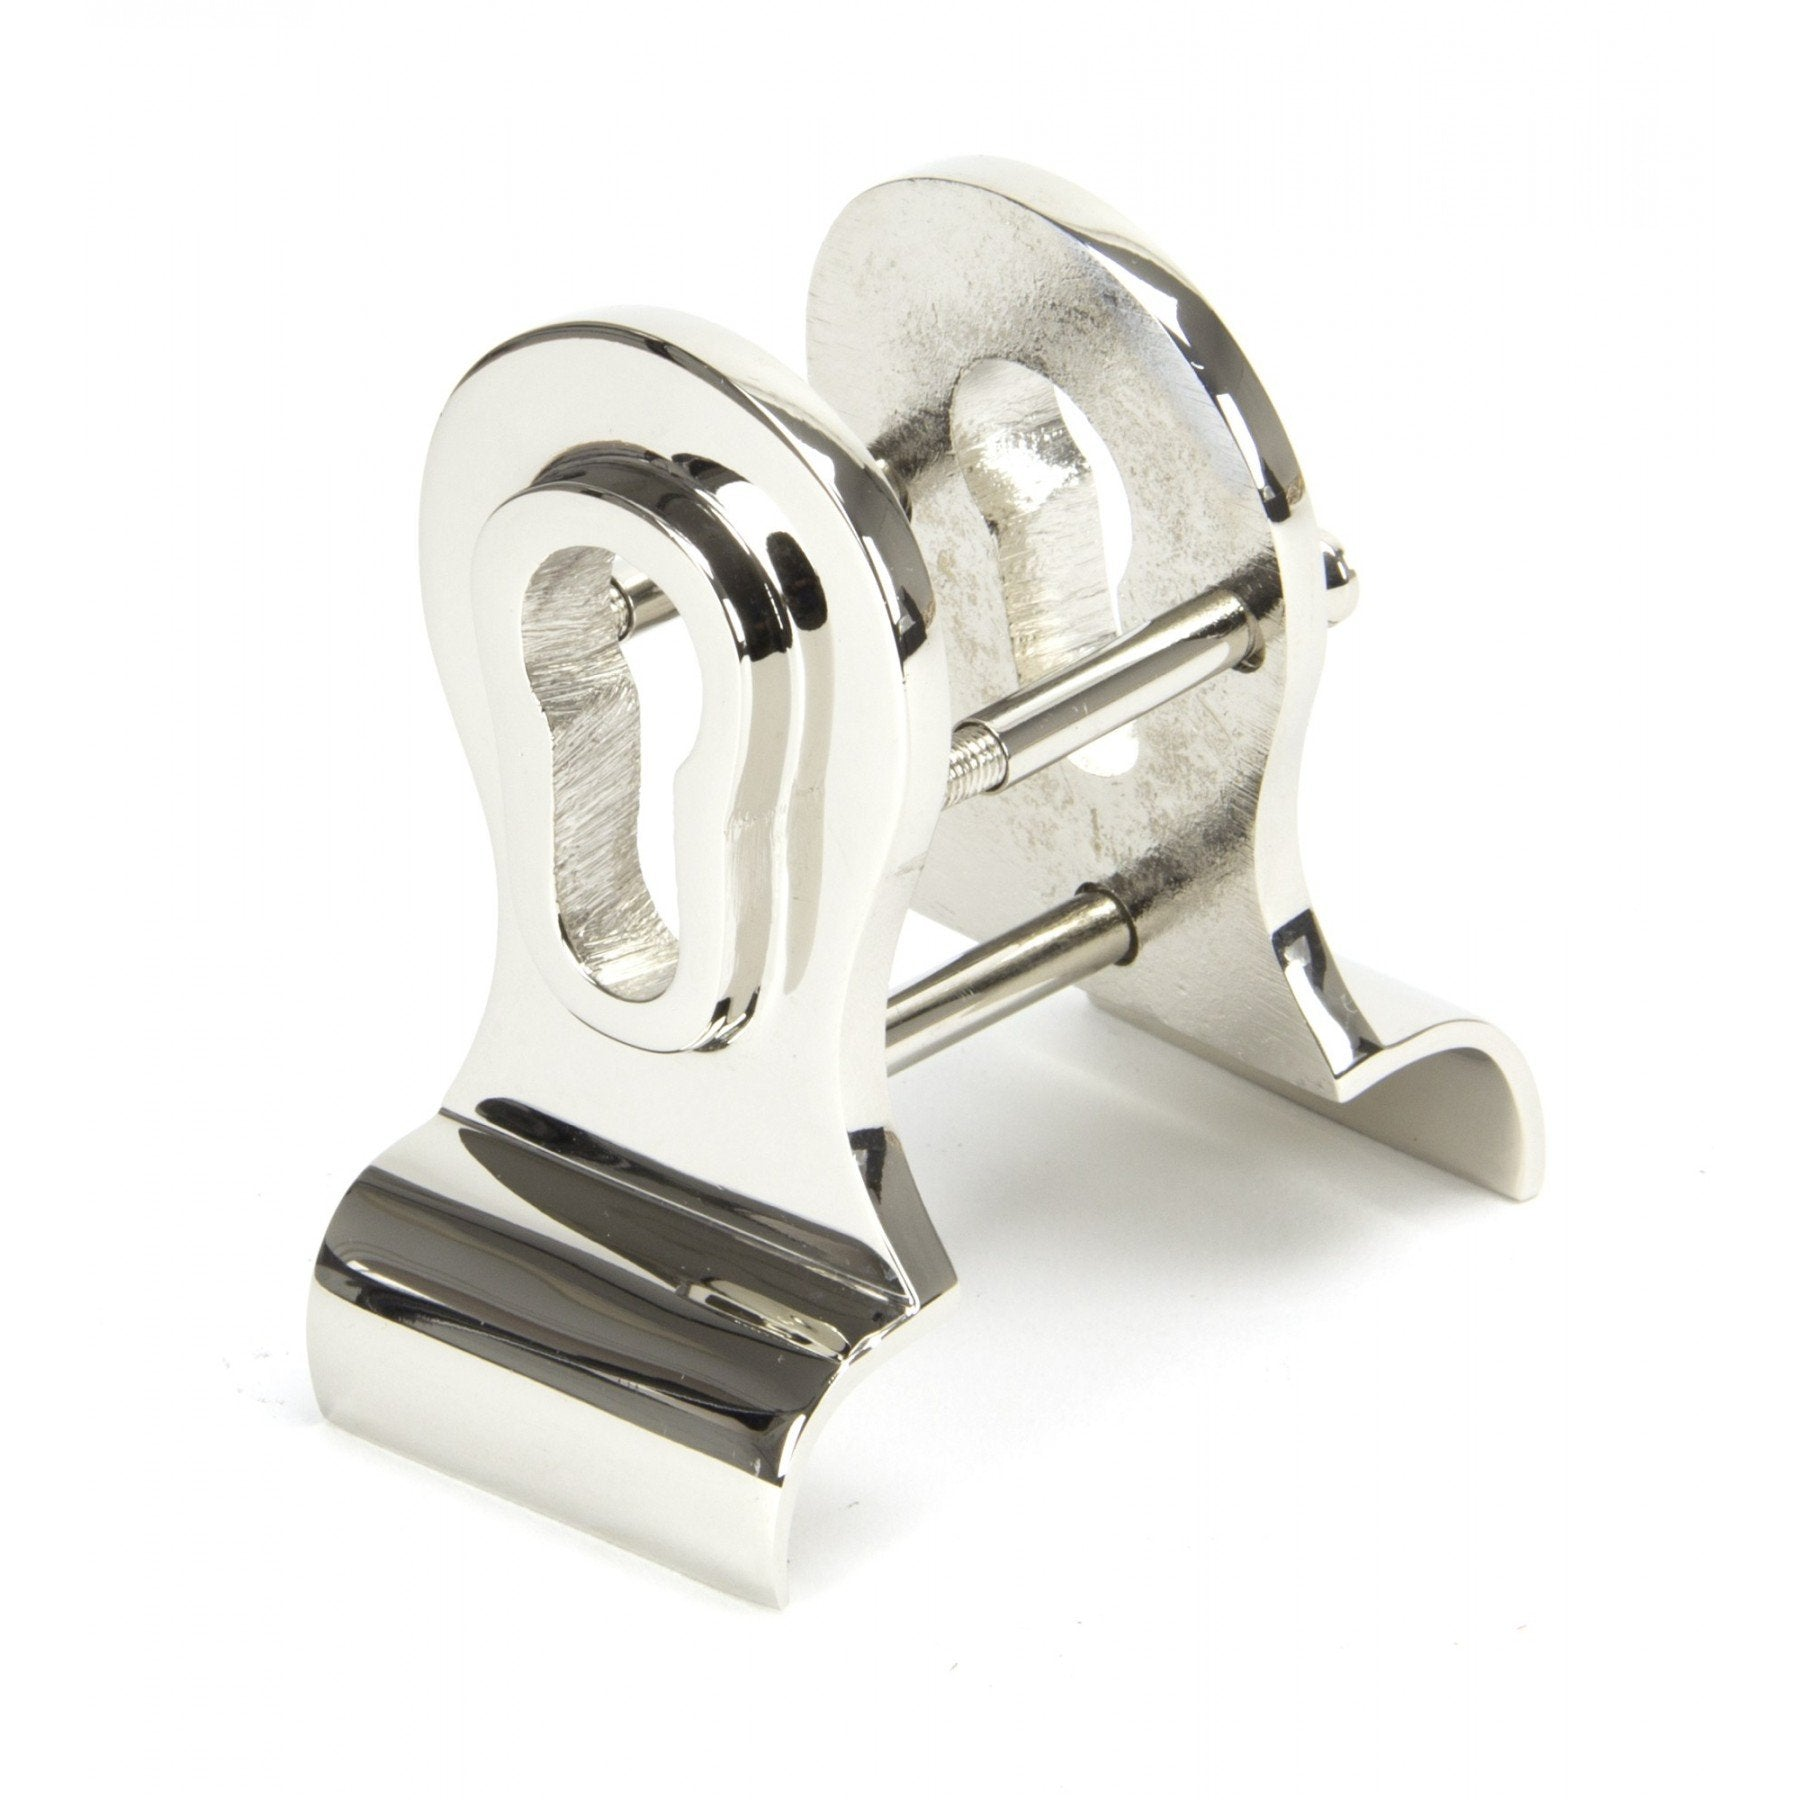 Polished Nickel 50mm Euro Door Pull (Back to Back fixings) - No.42 Interiors